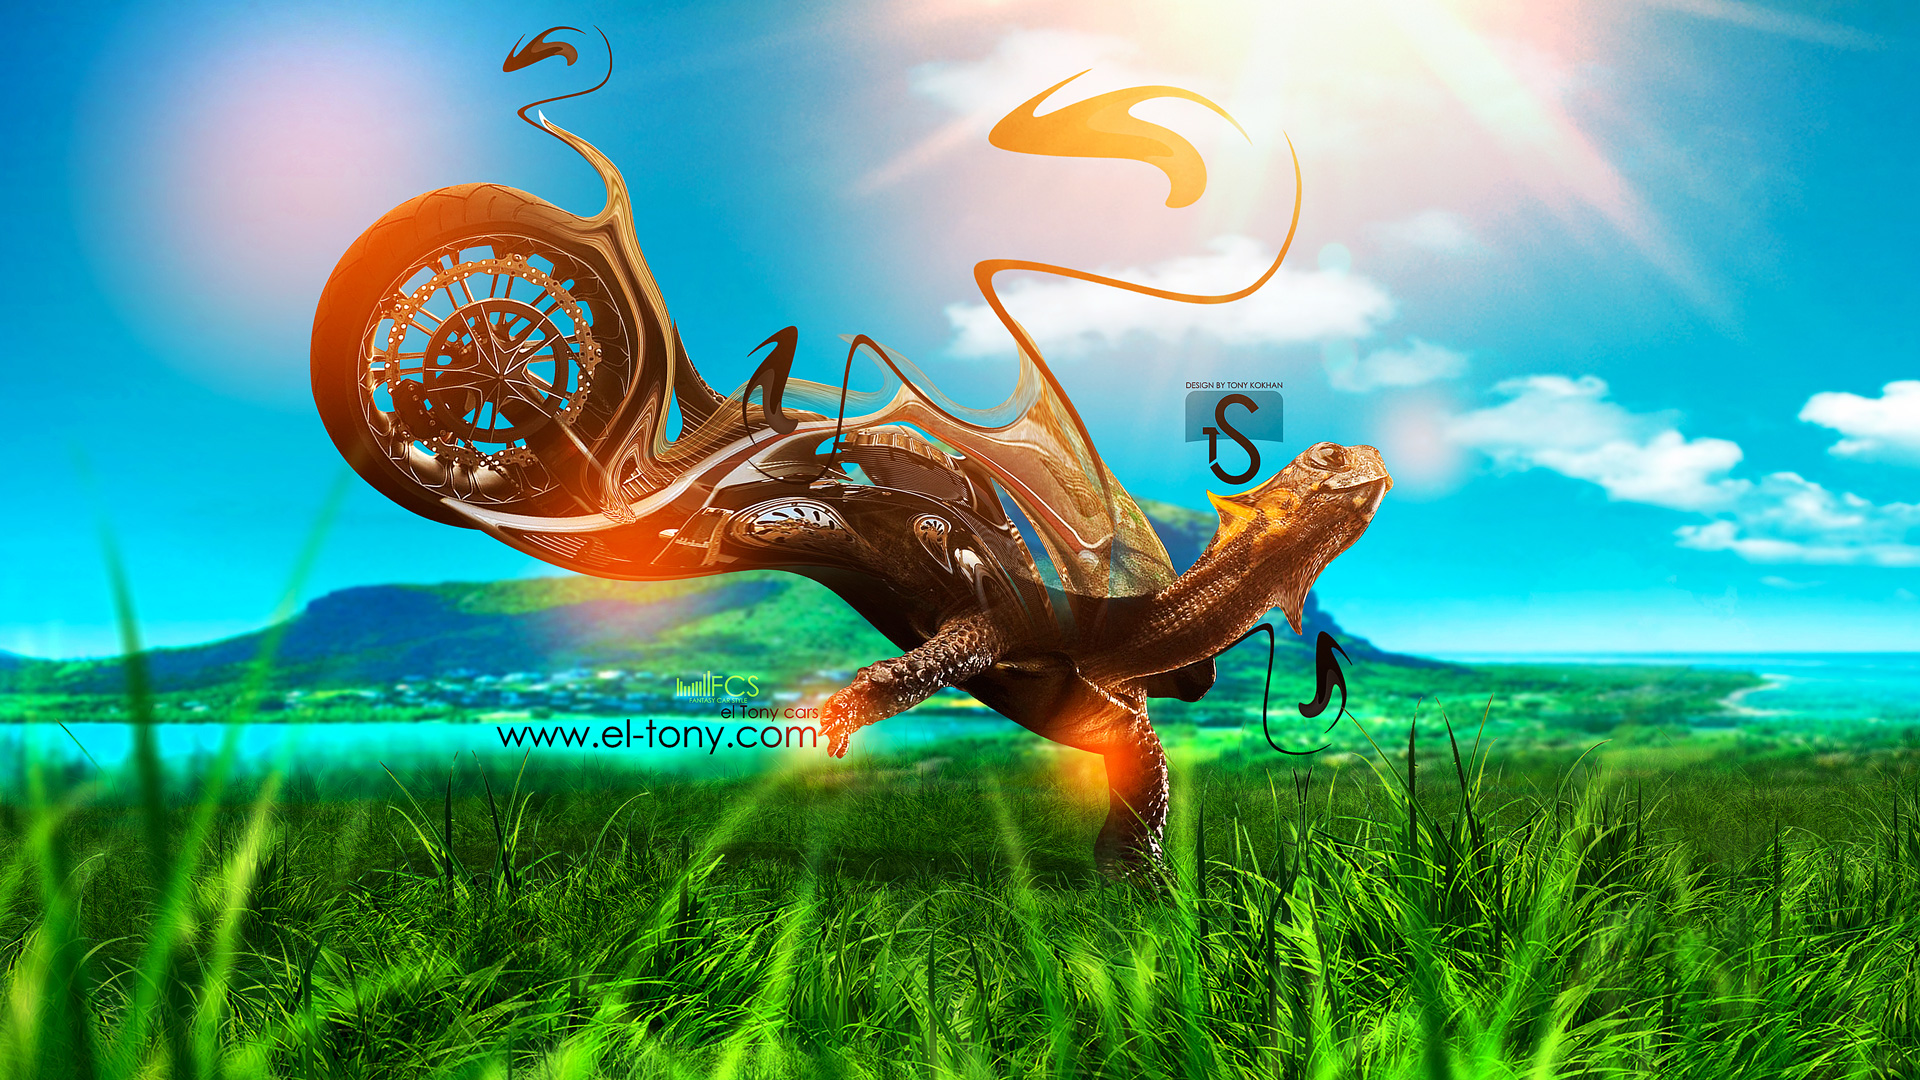 Moto Fantasy Turtle Speed Art 2013 Nature Orange Neon HD Wallpapers ...